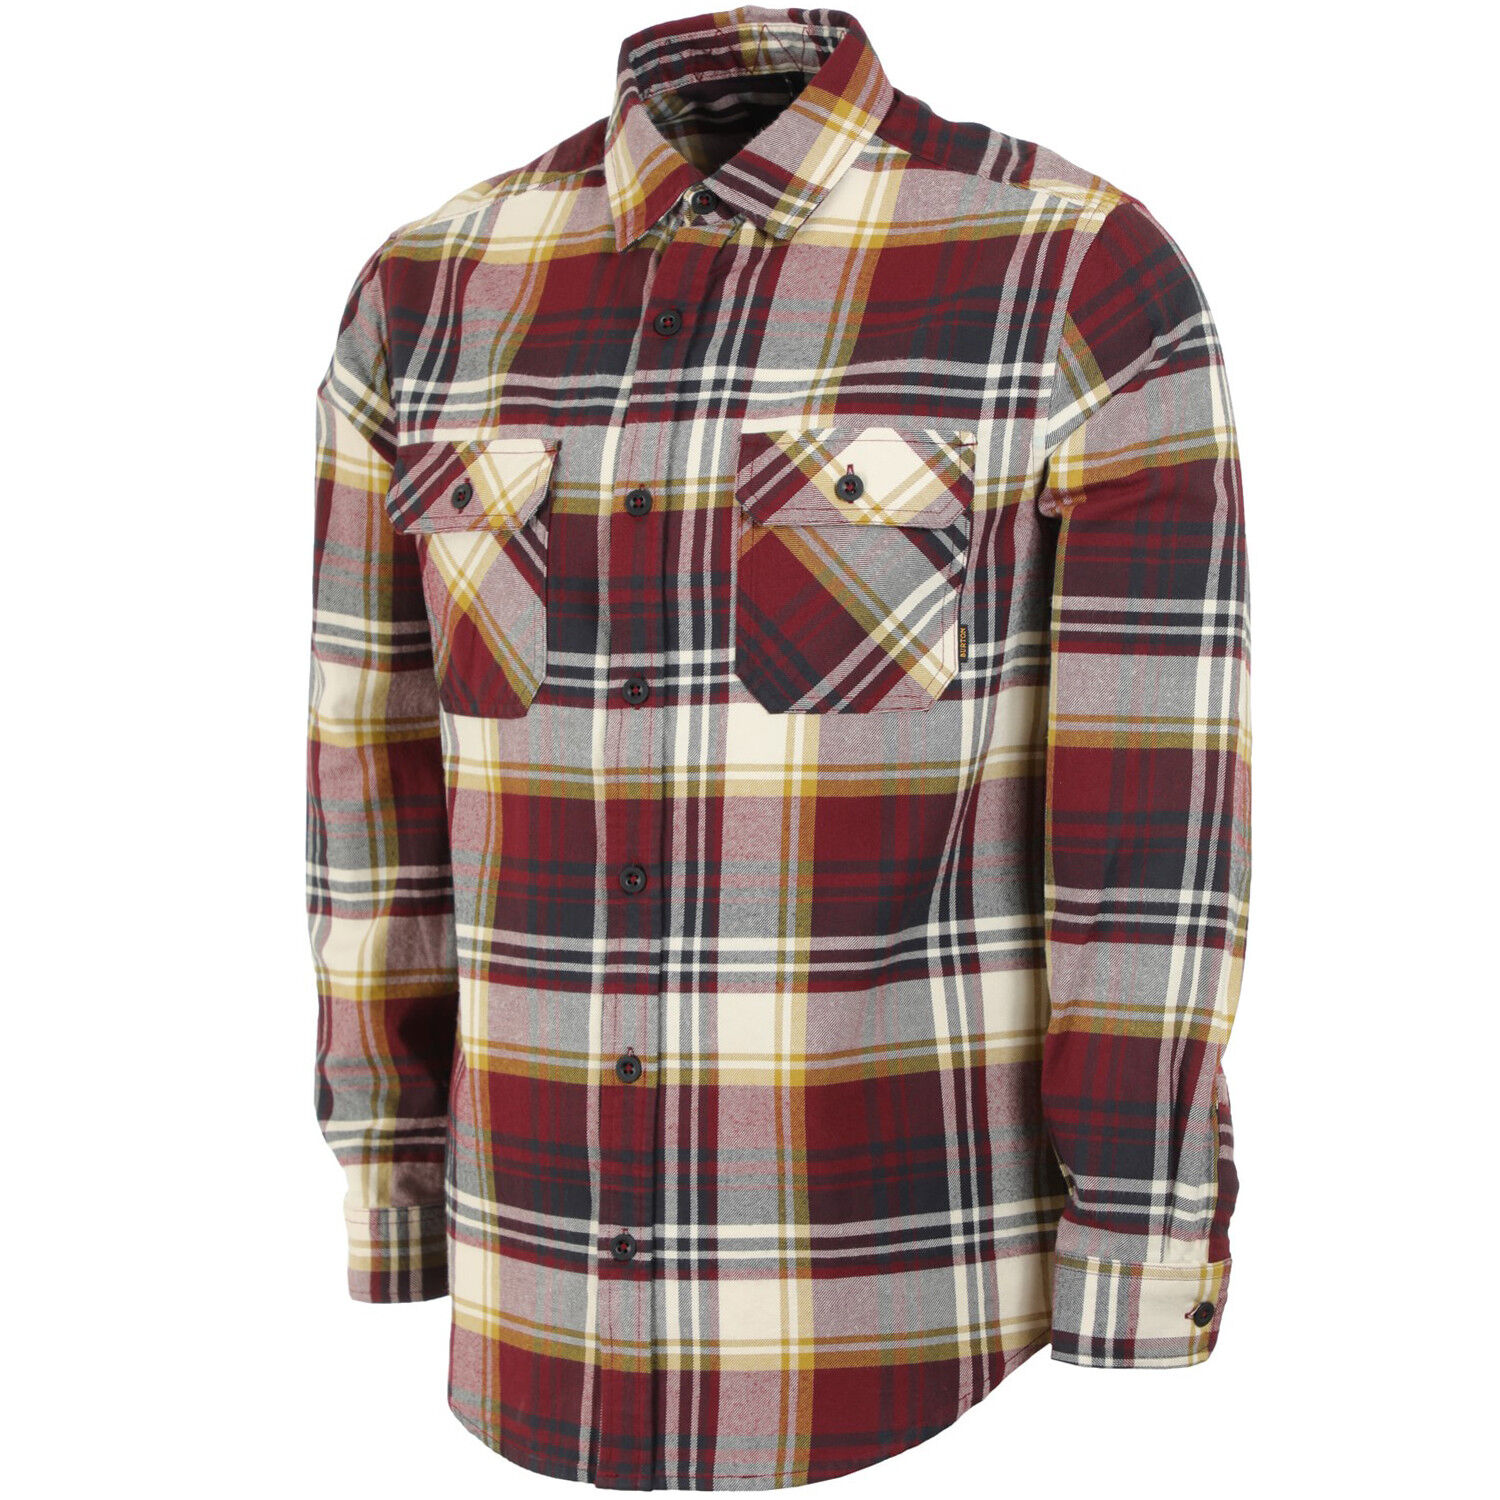 BURTON Mens 2019 - Brighton Flannel Shirt - Port Royal Stump Plaid